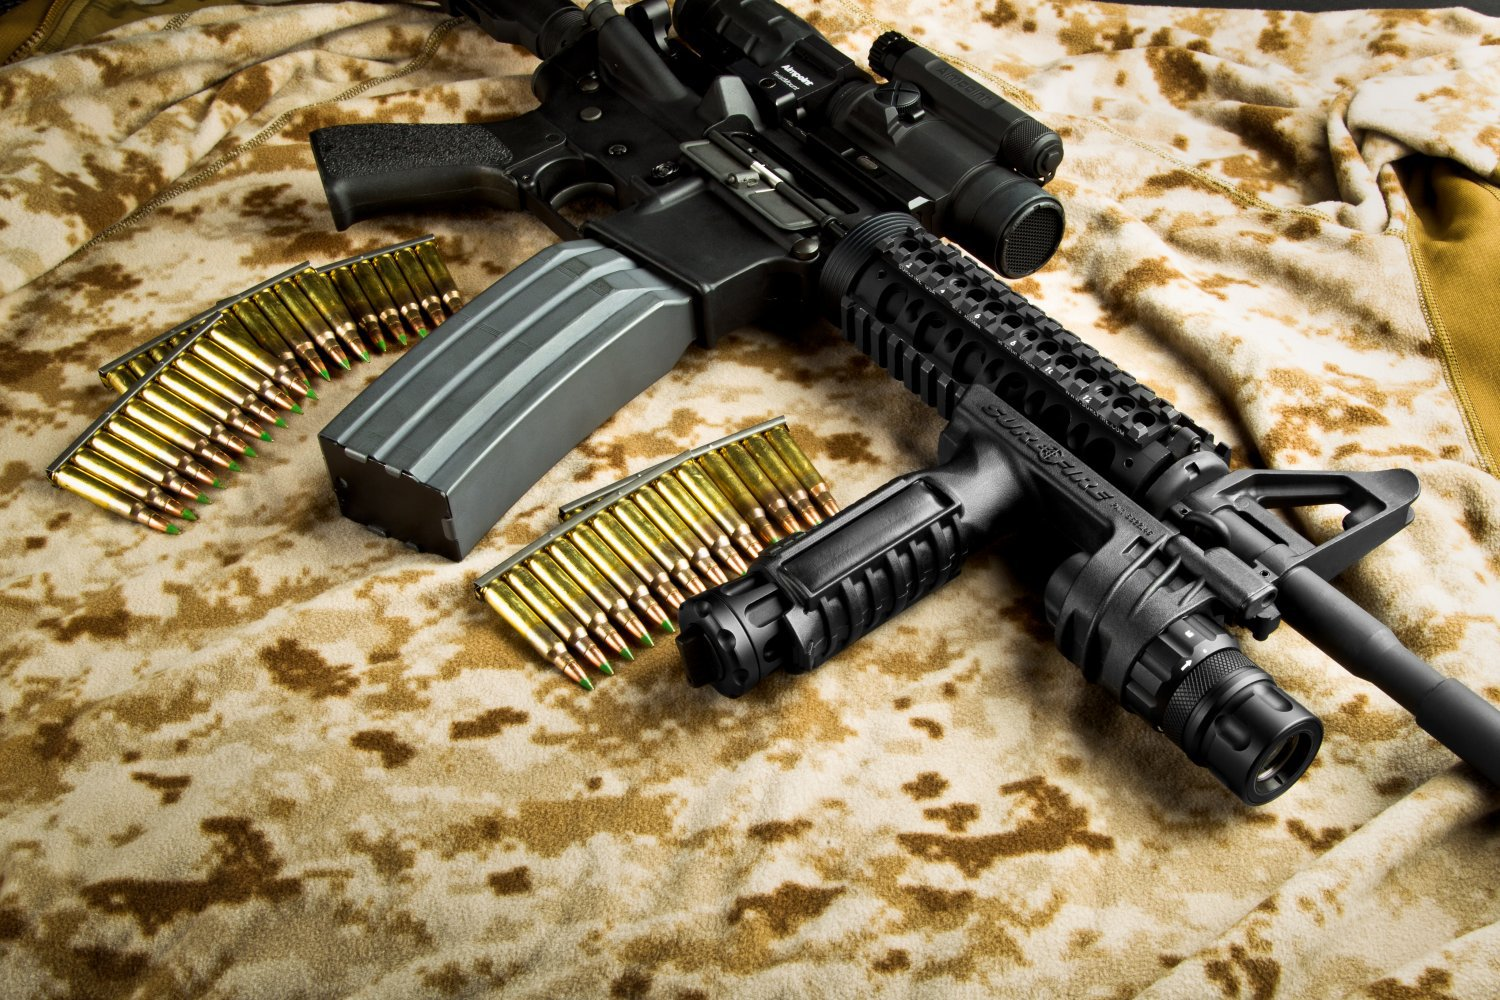 """DR Exclusive!: SureFire MAG5-60 and MAG5-100 High Capacity Magazine (HCM) """"Quad-Stack"""" AR Rifle Magazines: 60-Round/Shot and 100-Round/Shot AR (AR-15/M16) 5.56mm NATO Box Magazines for Significantly-Increased Firepower during Infantry Combat and Tactical Engagements of All Sorts"""